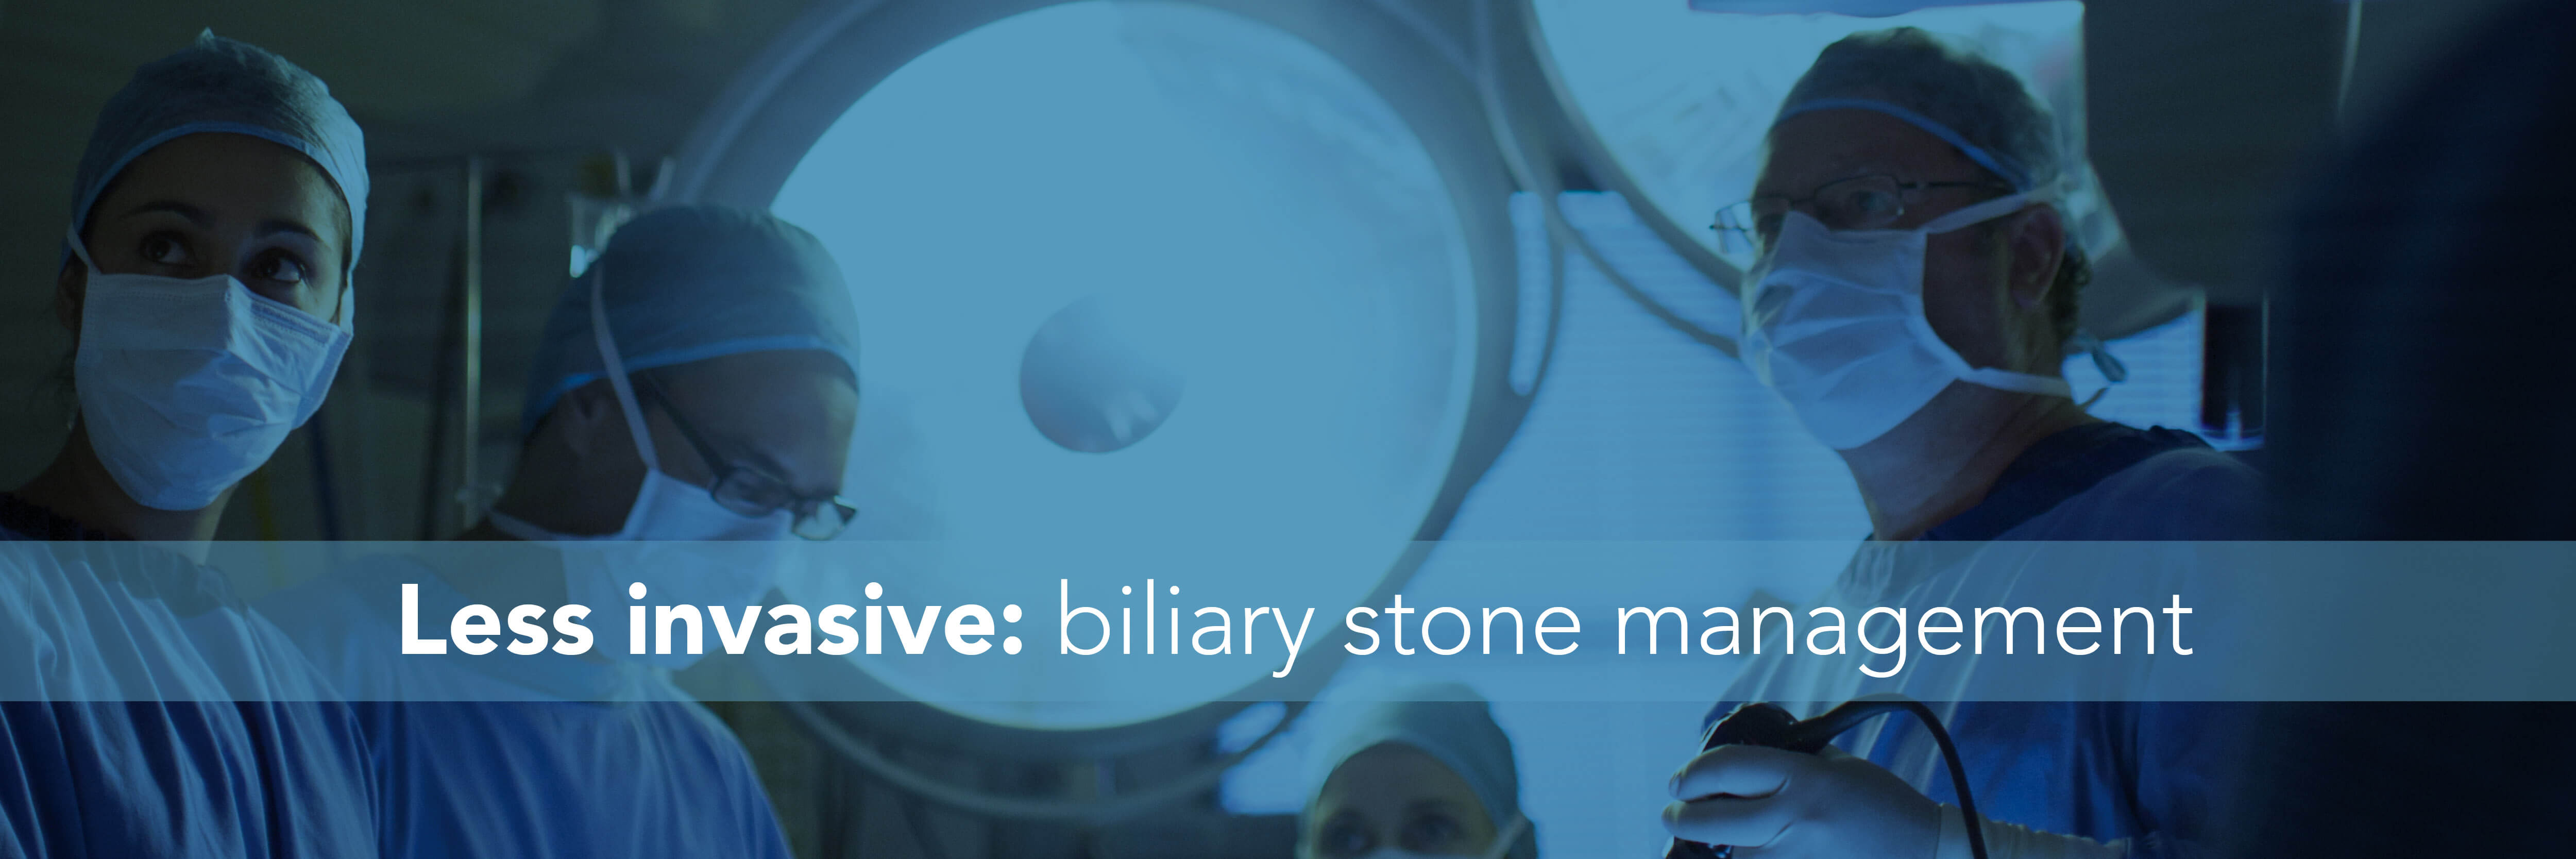 Less invasive: biliary stone management